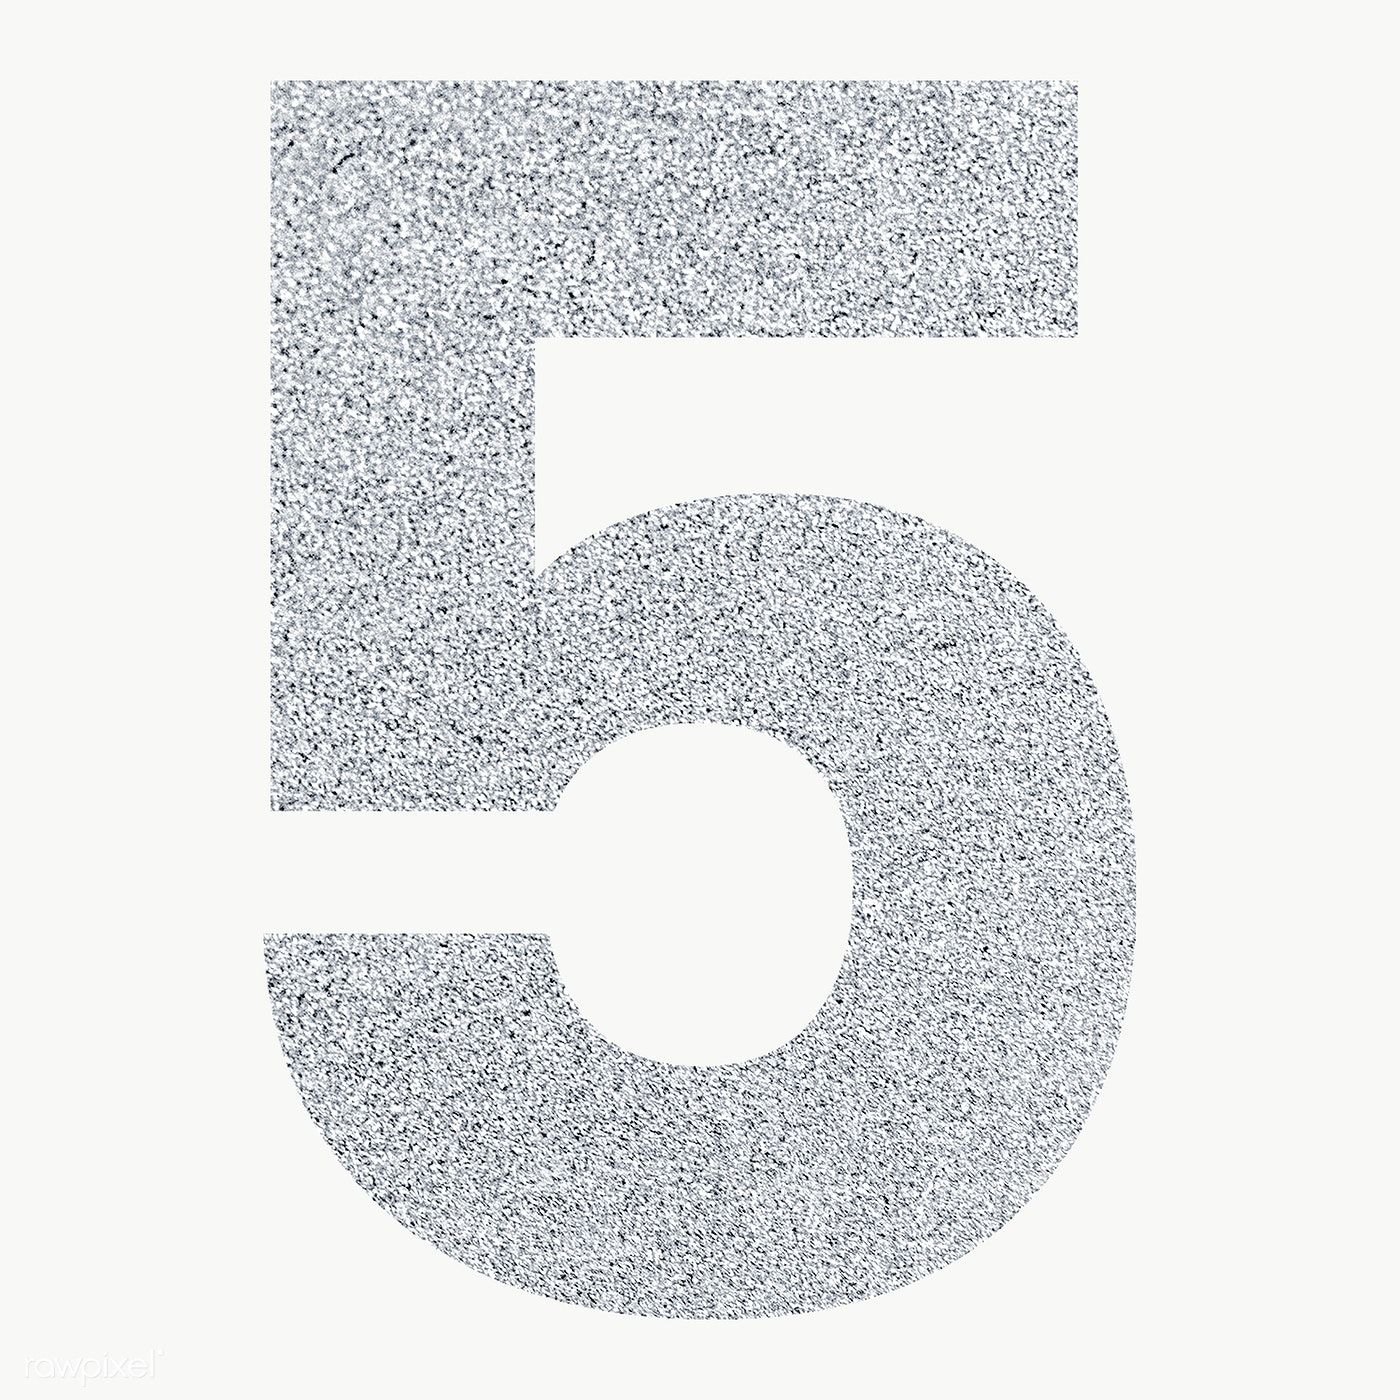 Glitter Metallic Number 5 Typography Transparent Png Free Image By Rawpixel Com Ningzk V Typography Glitter Free Png